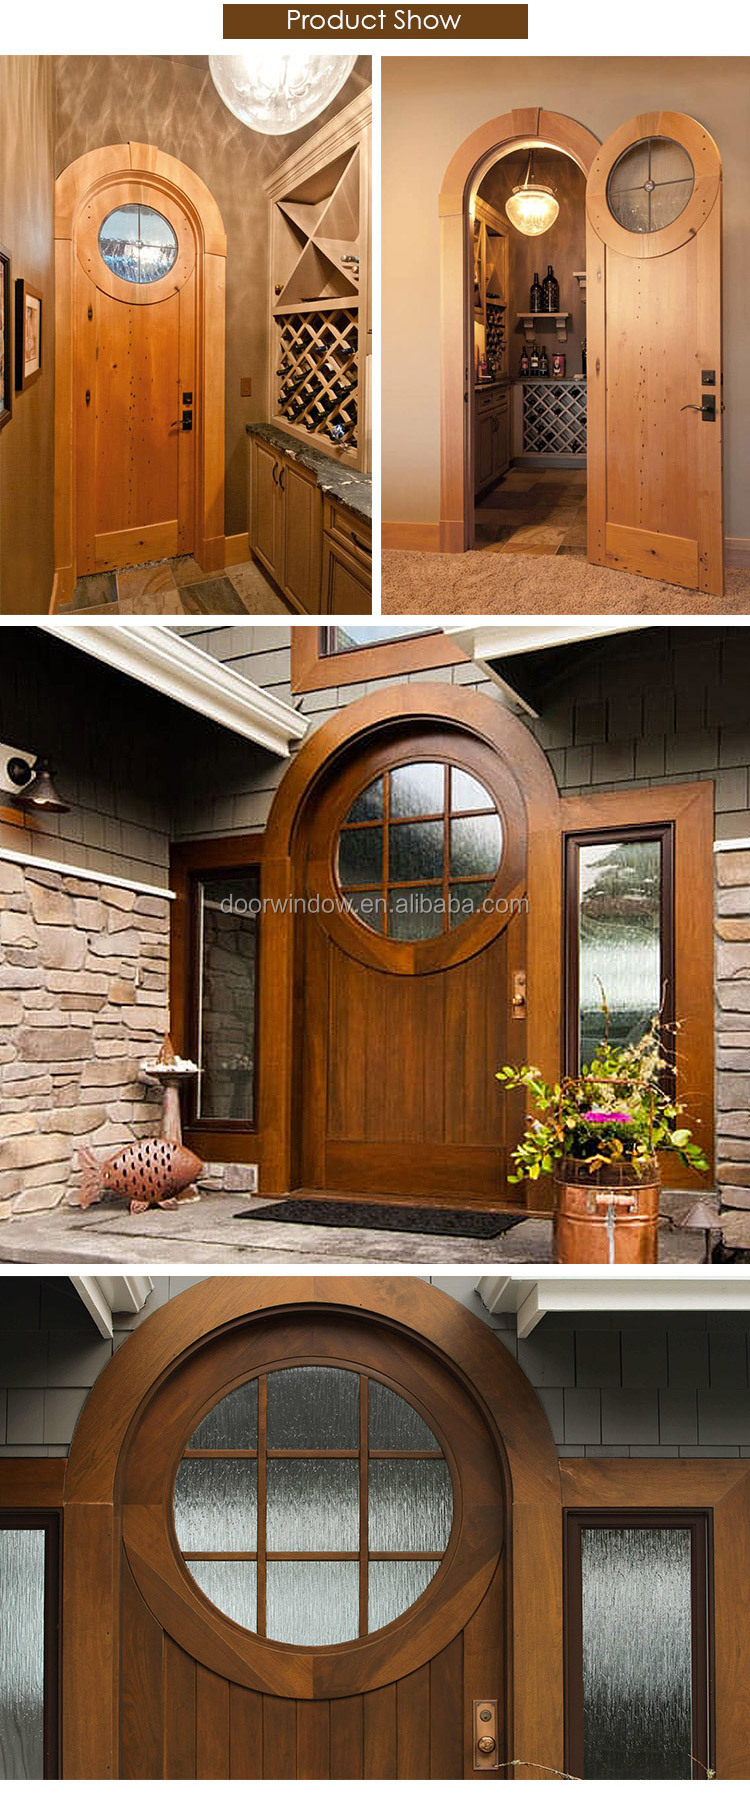 Doorwin door grill design arched top wooden decoration interior door for villa